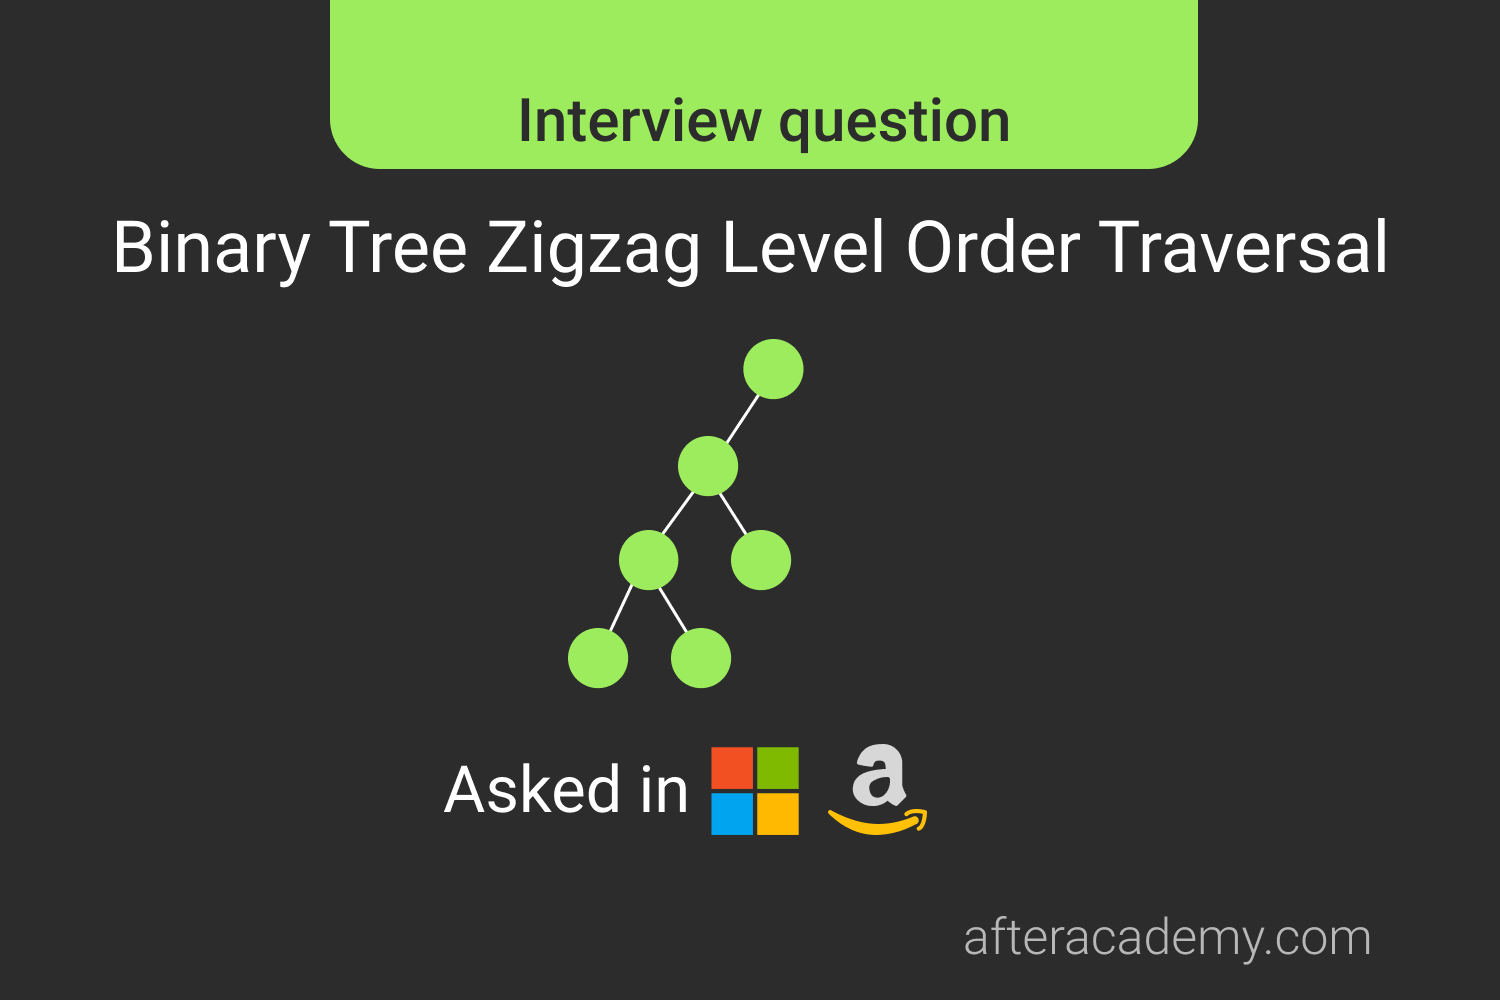 Binary Tree Zig Zag Level Order Traversal